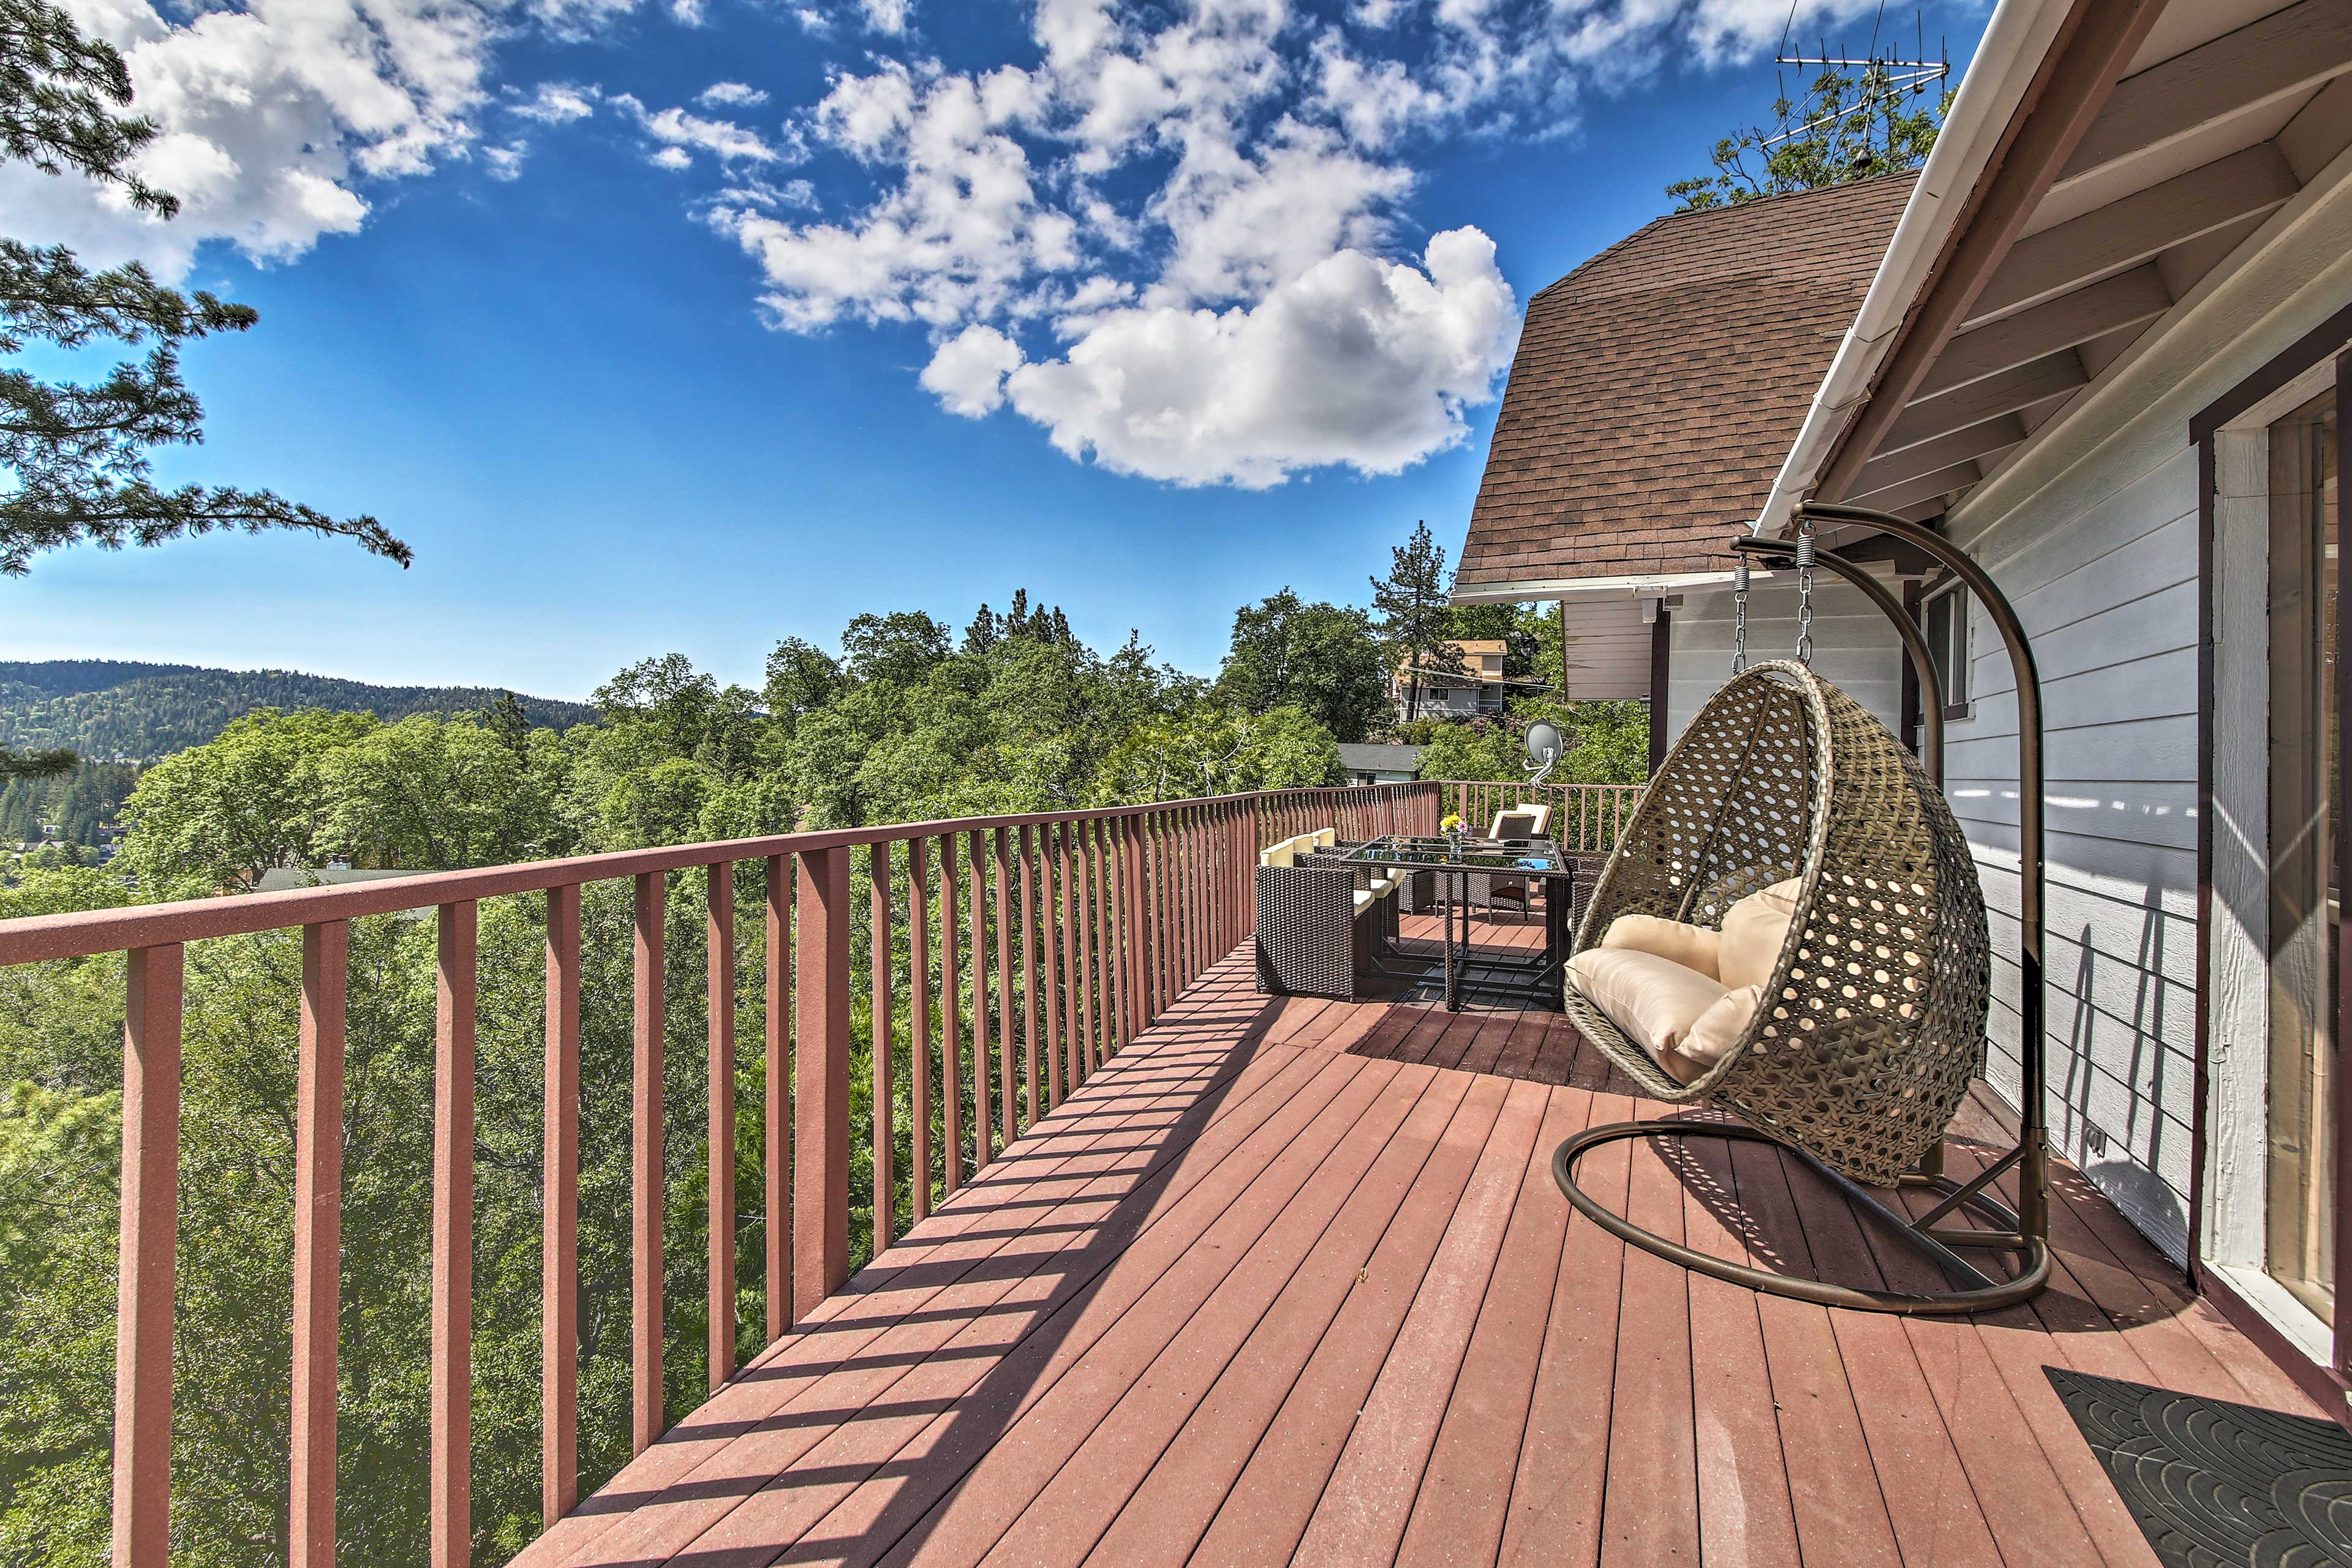 Soak up the sun on the deck.